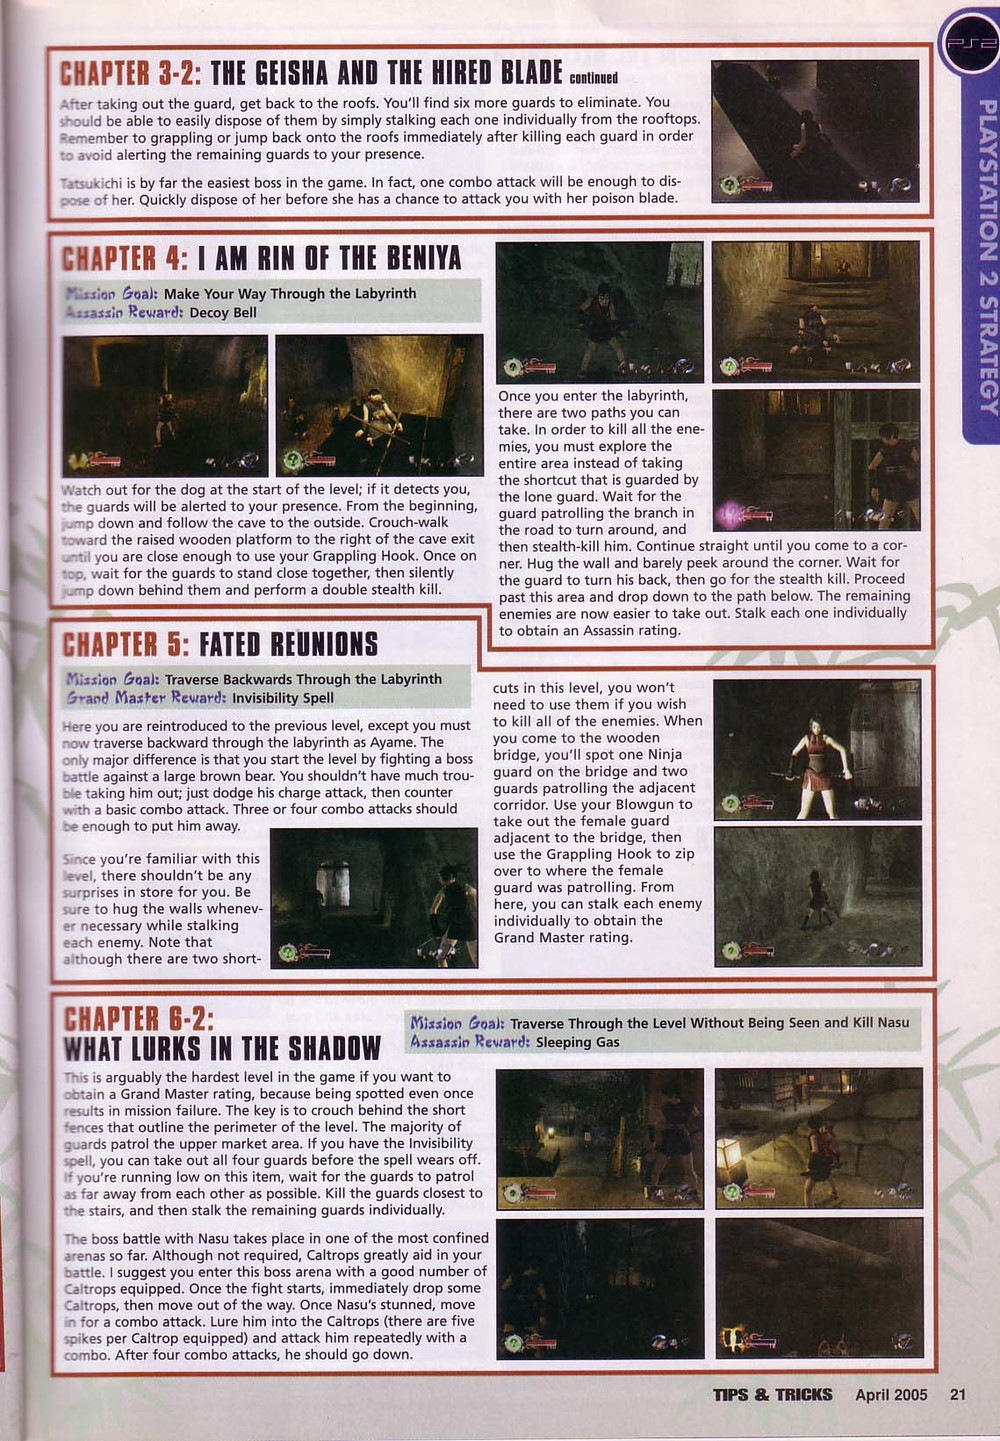 TipsandTricks_April_2005_Tenchu_pg4_Strategy.jpg